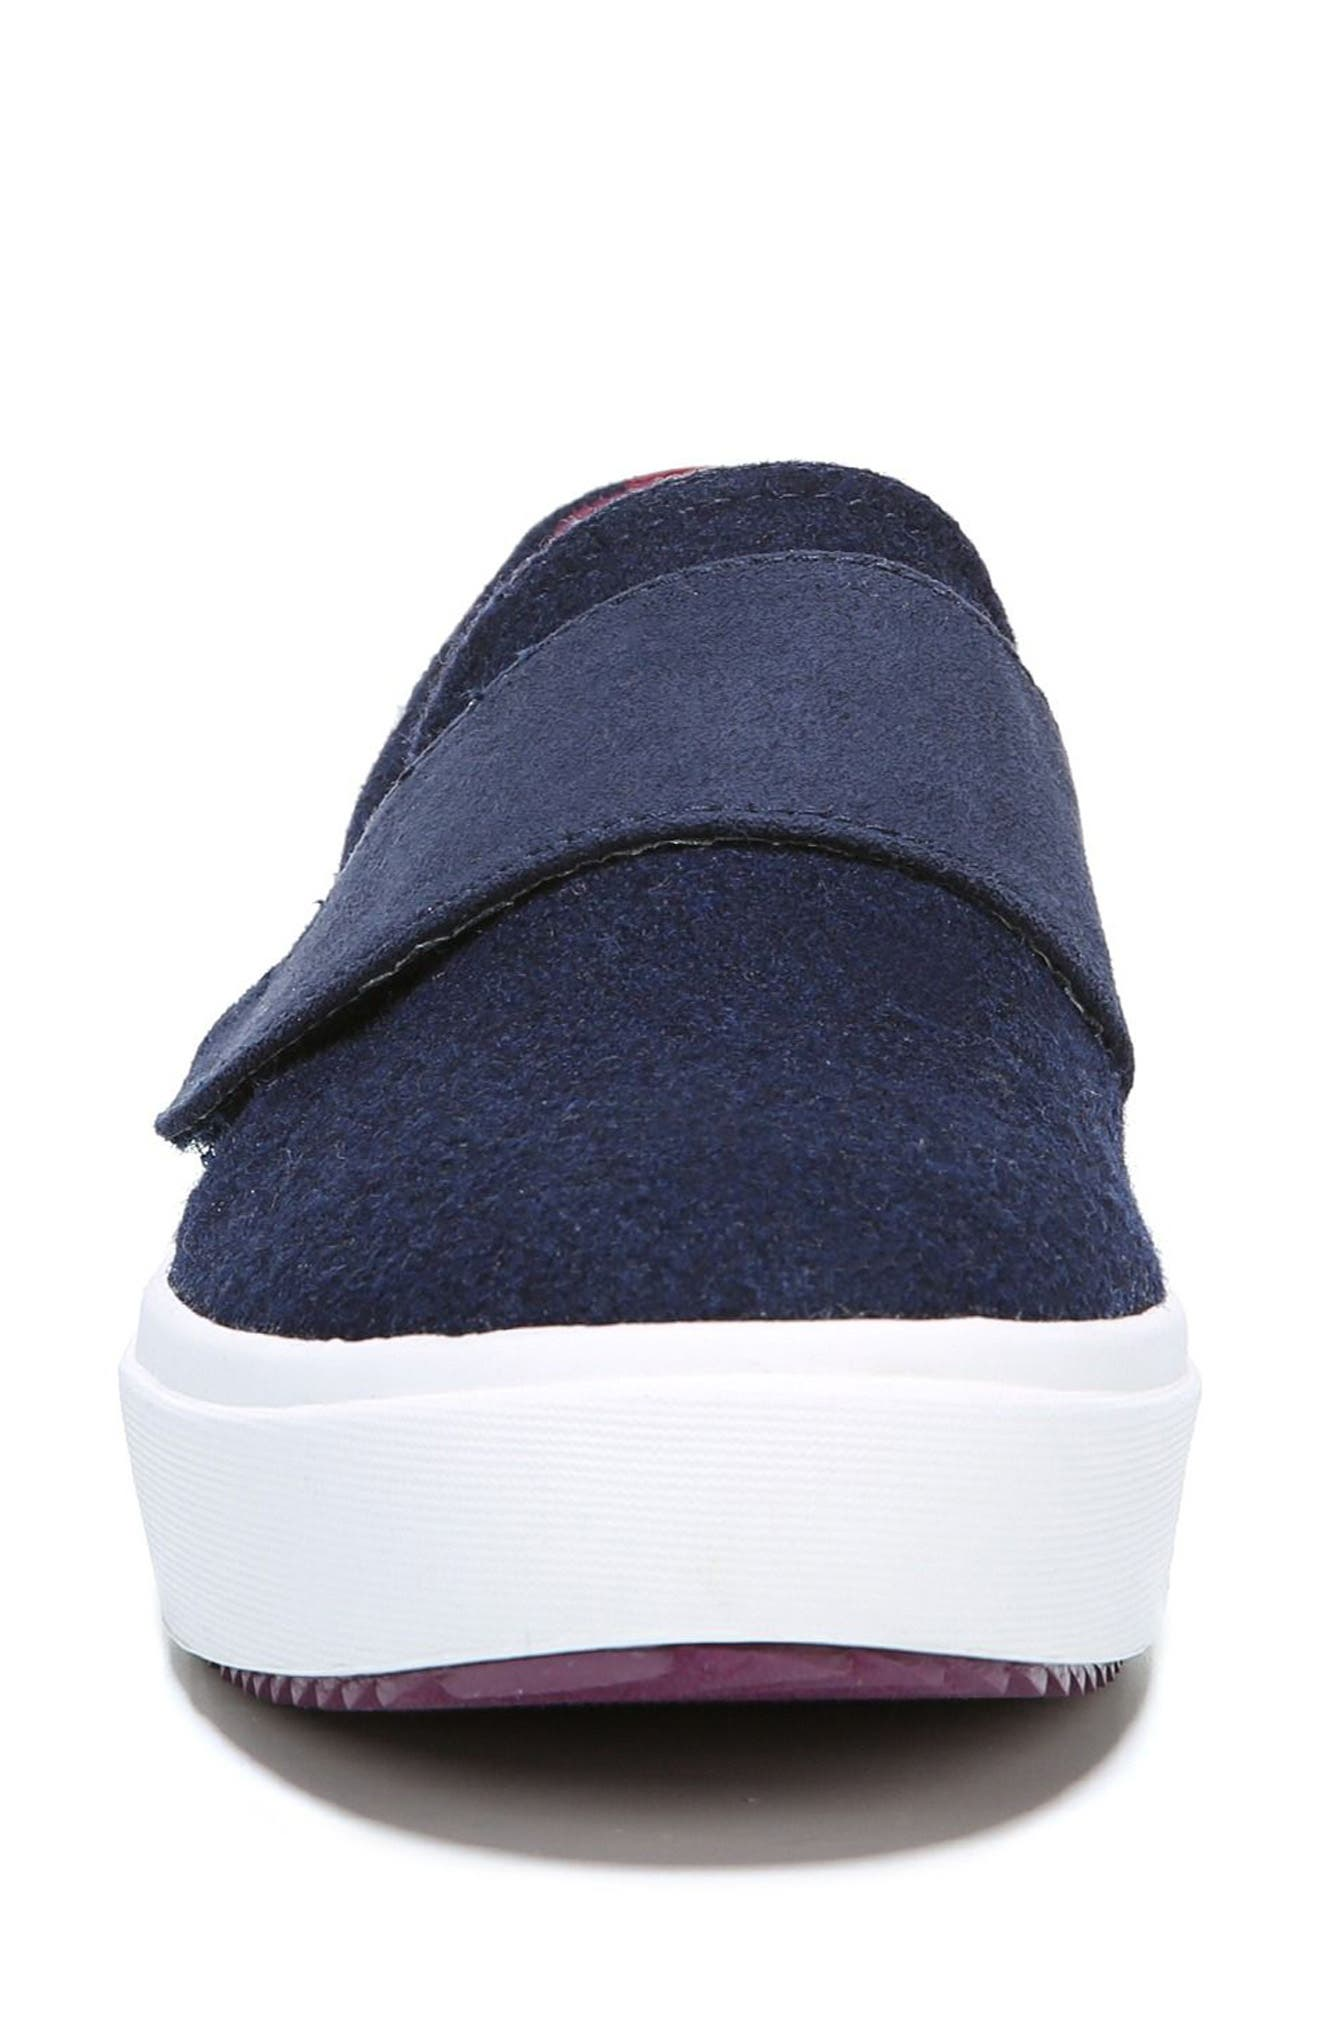 Alternate Image 4  - Dr. Scholl's Wander Band Slip-On Sneaker (Women)